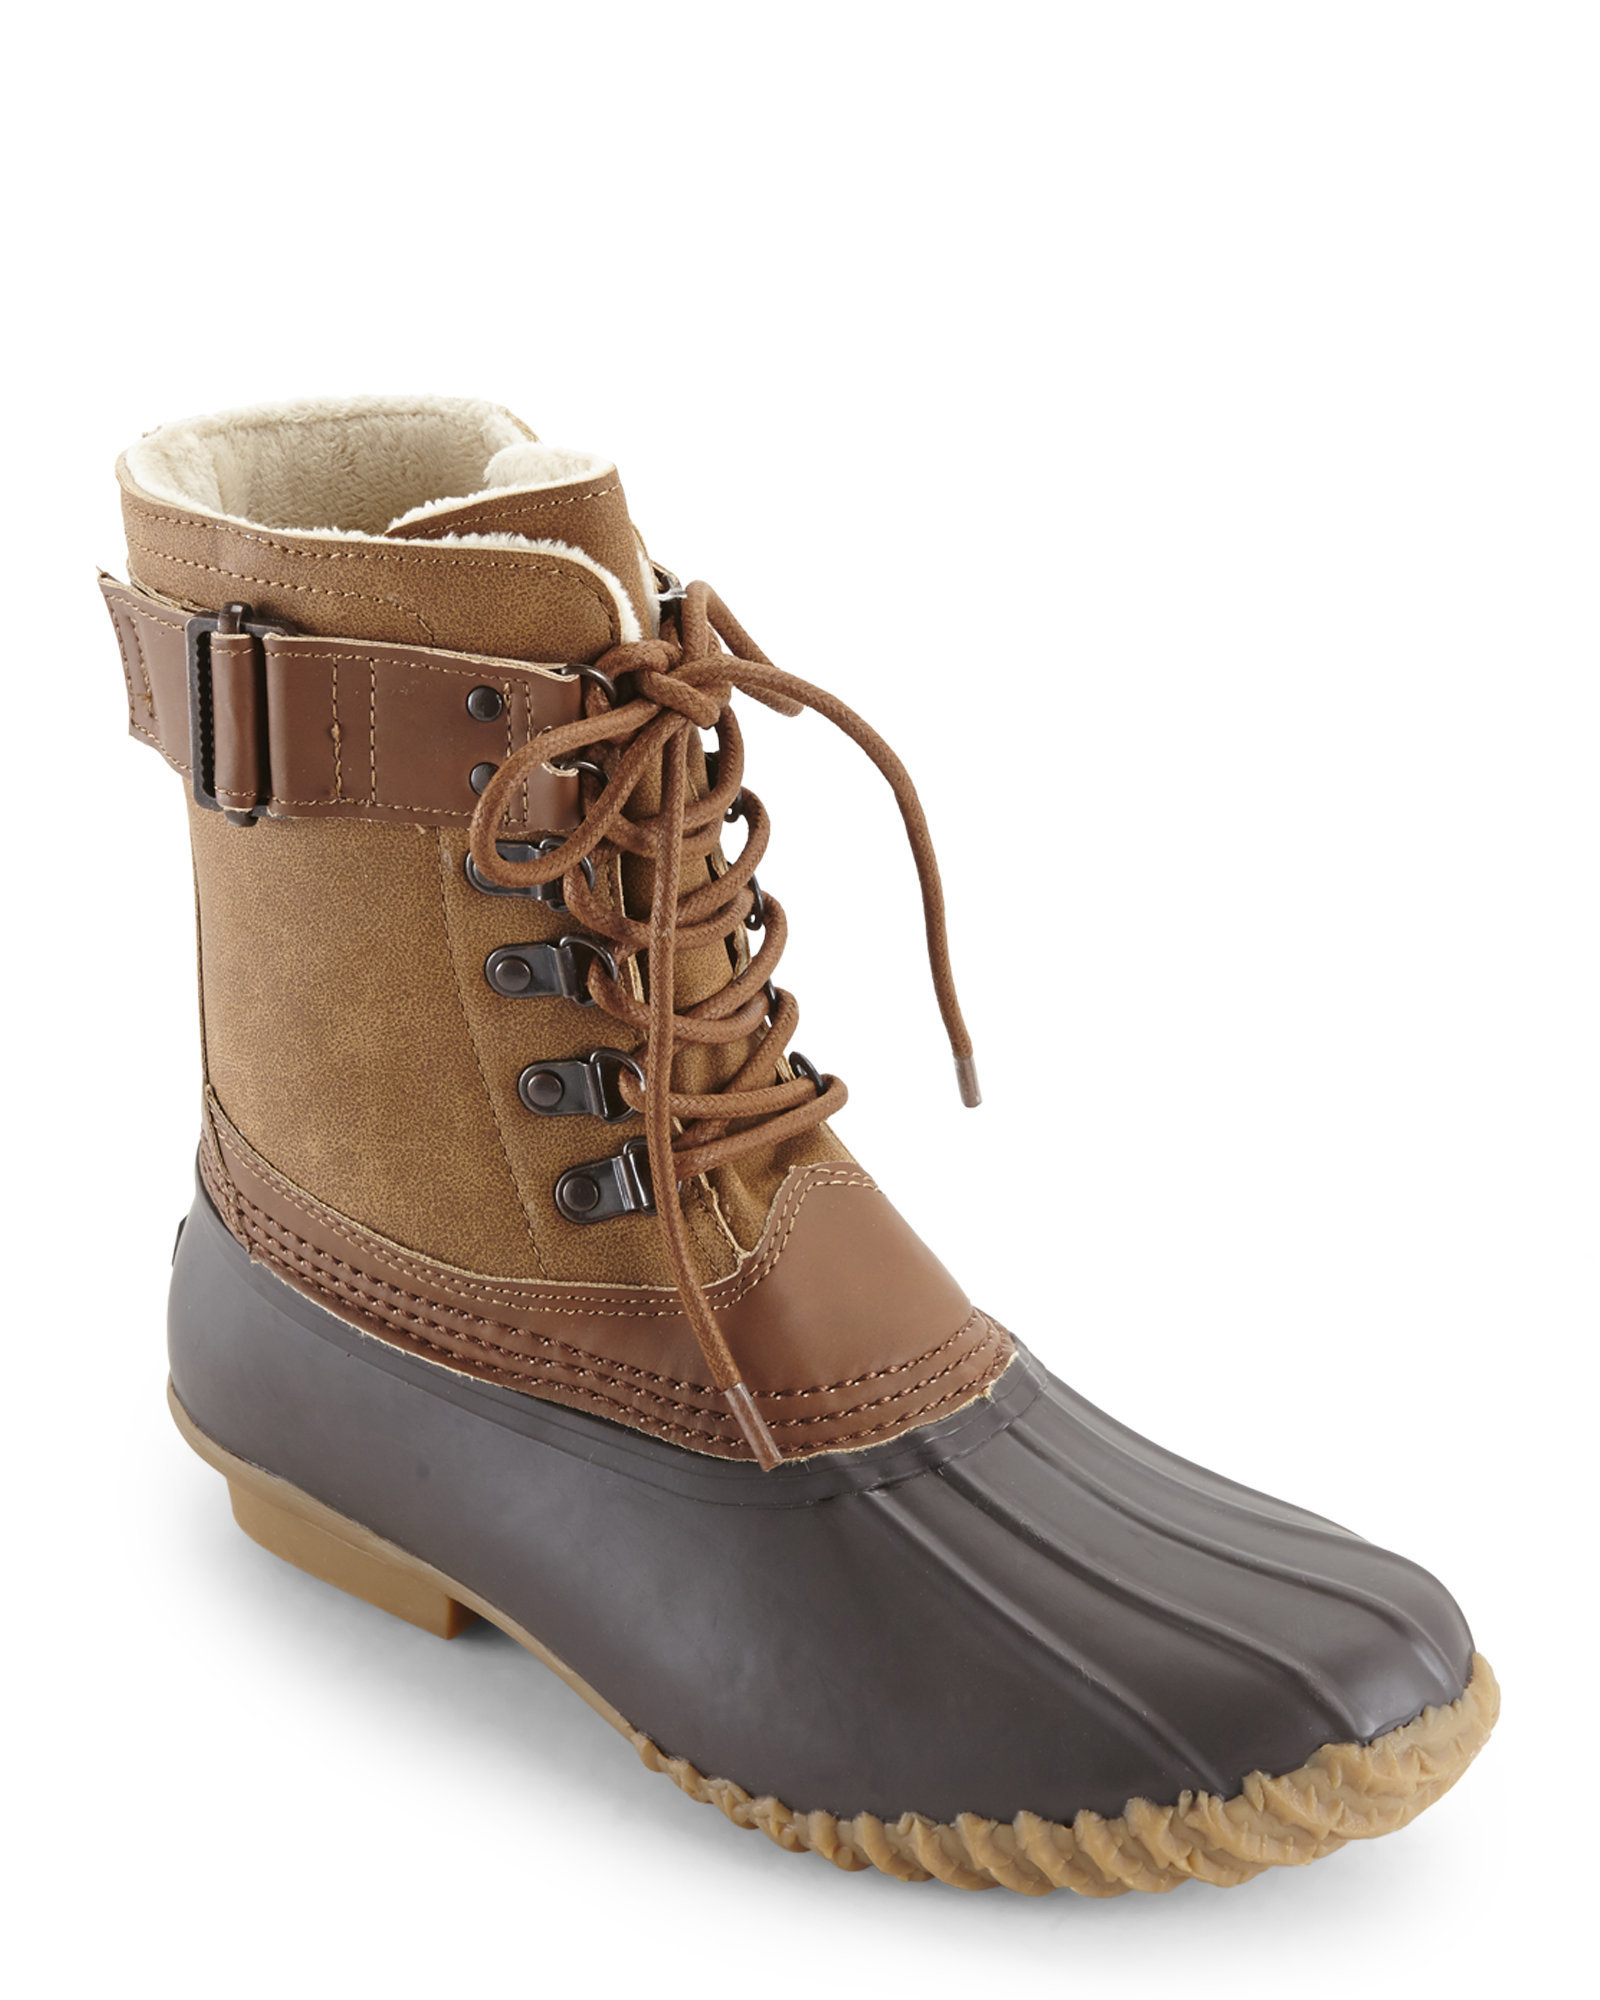 Lyst Esprit Whiskey Amp Brown Fleece Lined Duck Boots In Brown